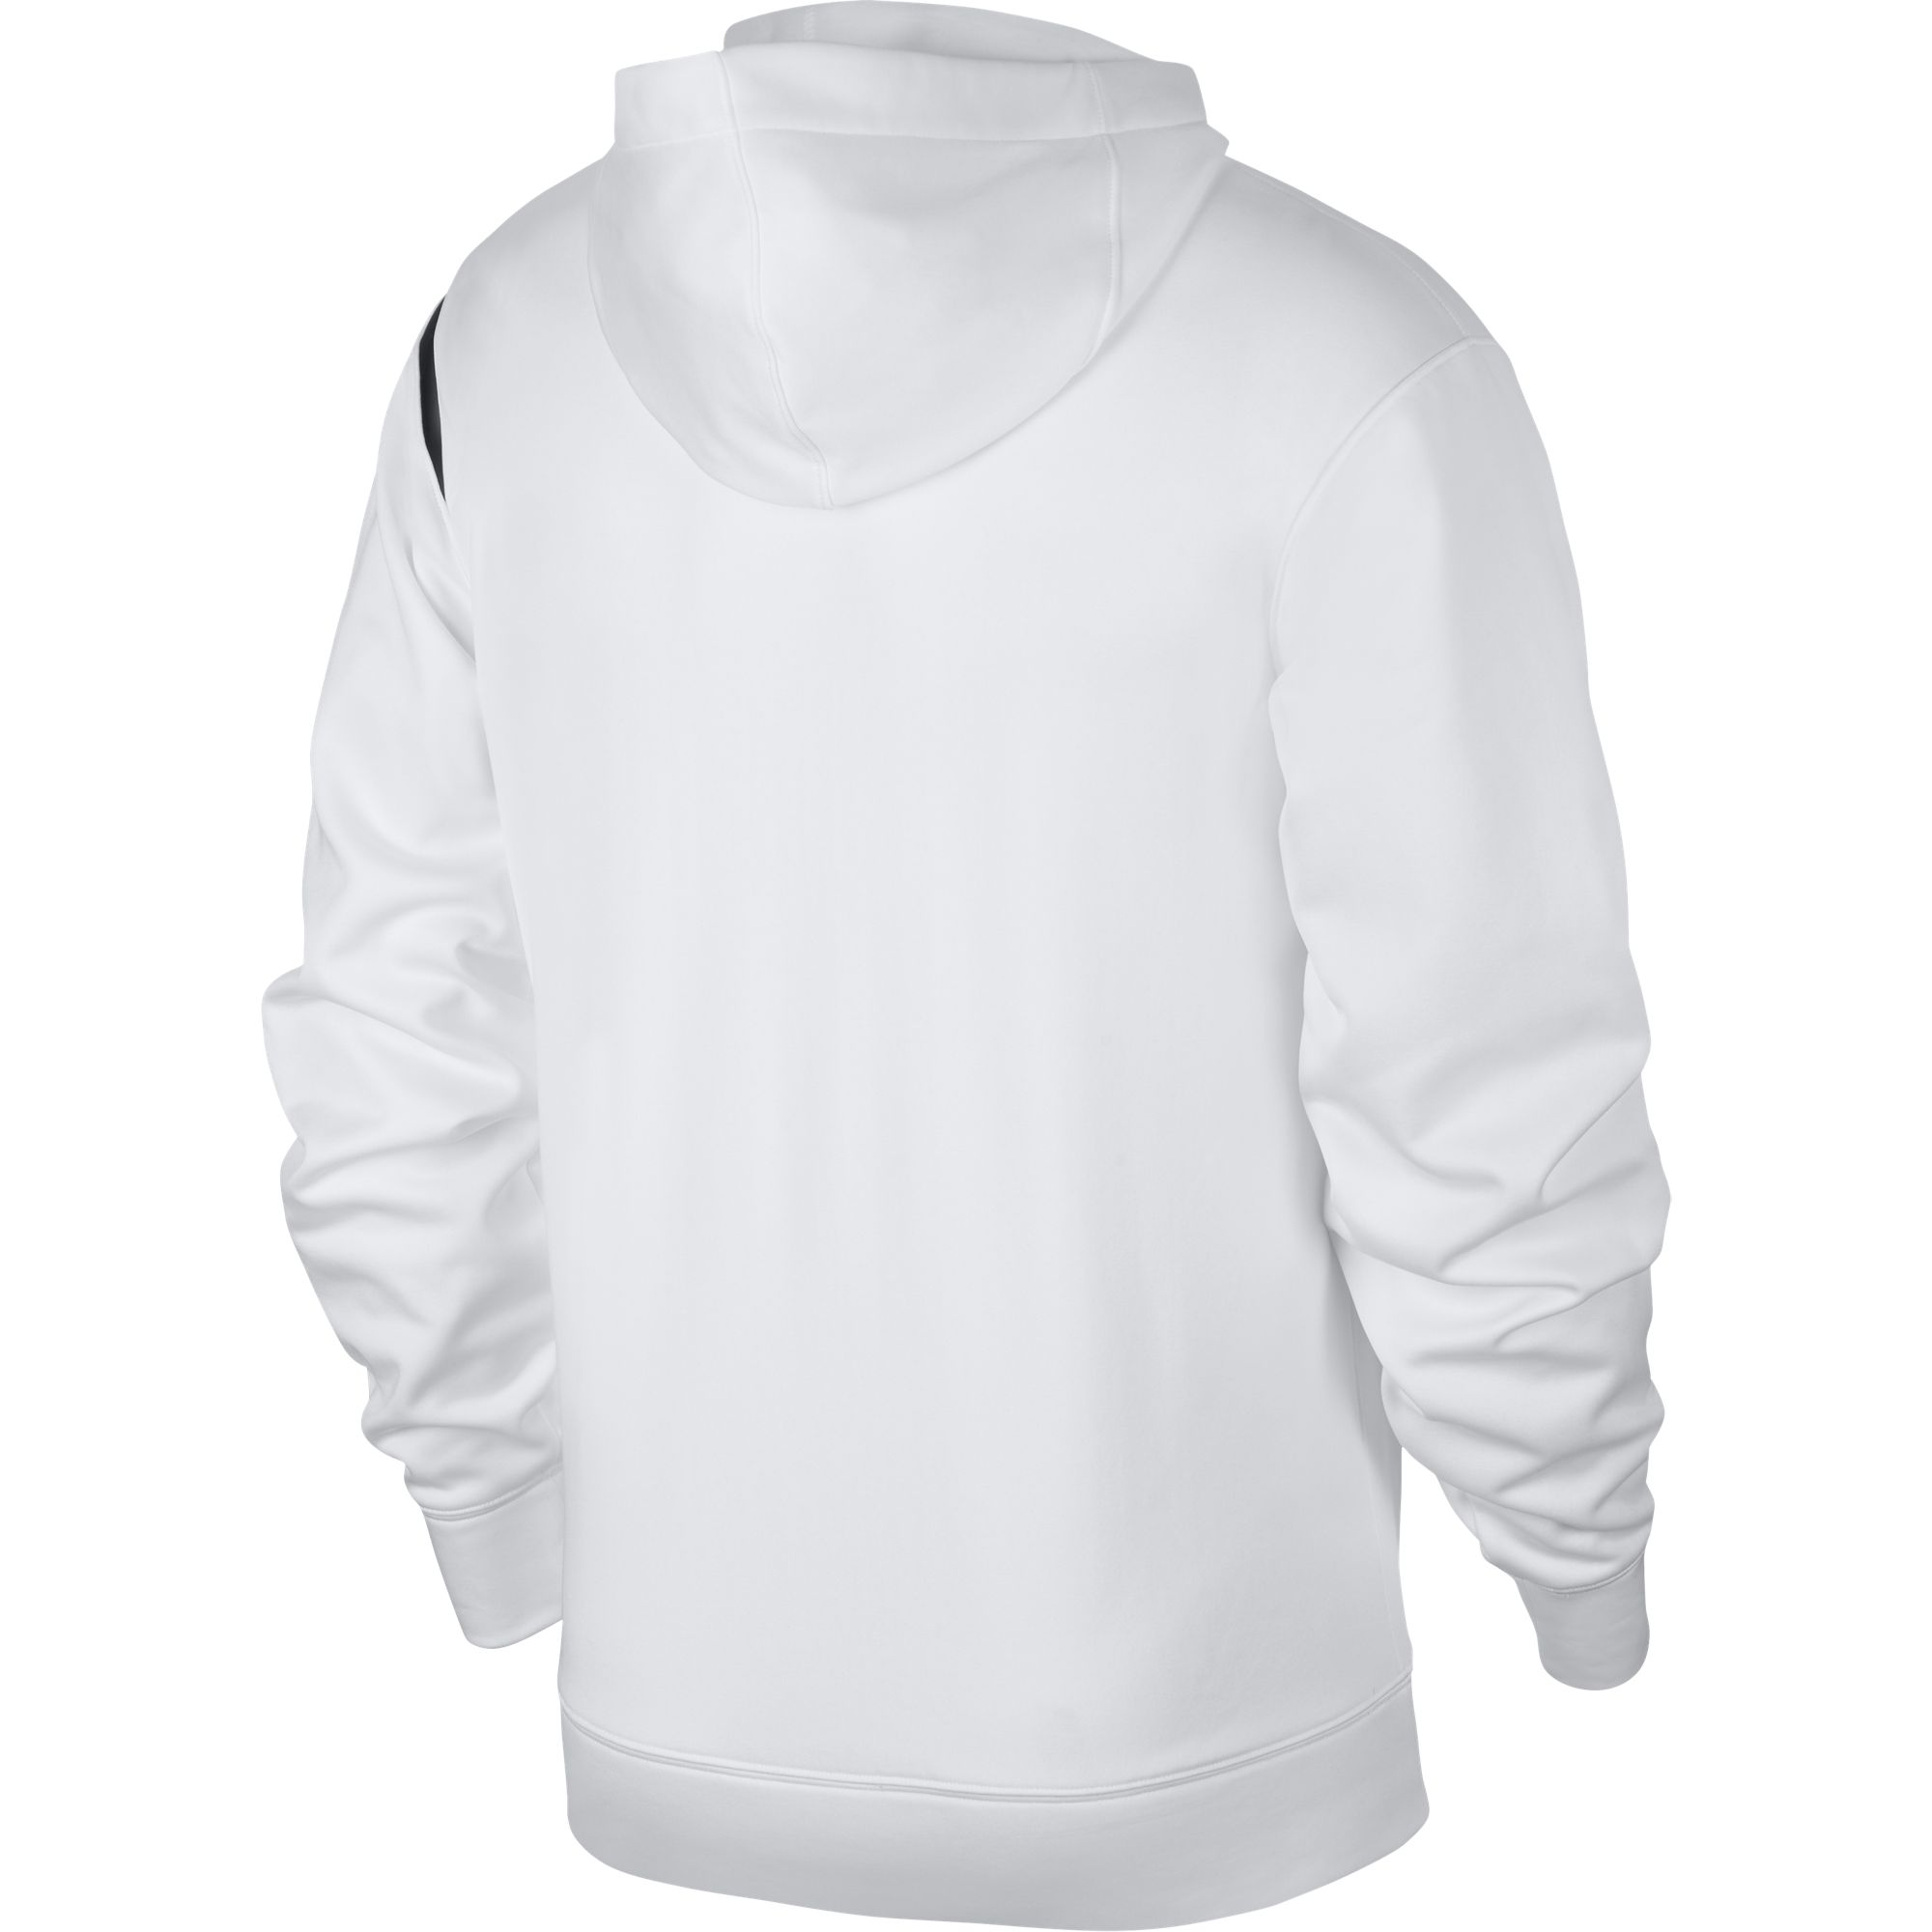 Men's Basketball Pullover Hoodie, White, swatch